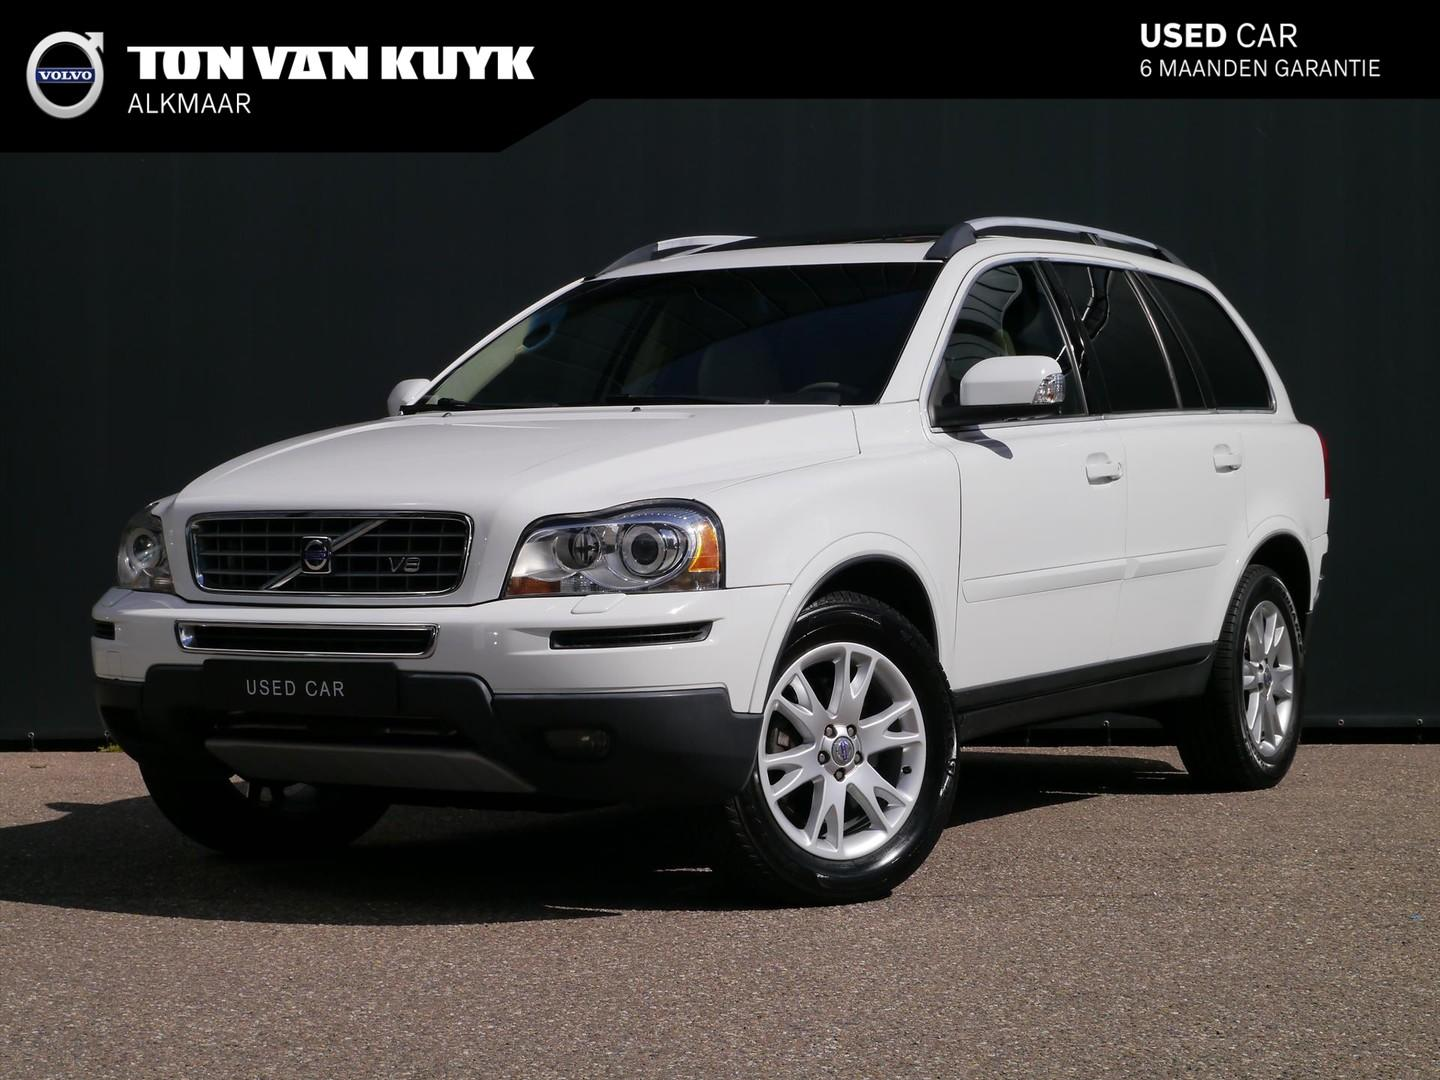 Volvo Xc90 V8 automaat summum 7-persoons